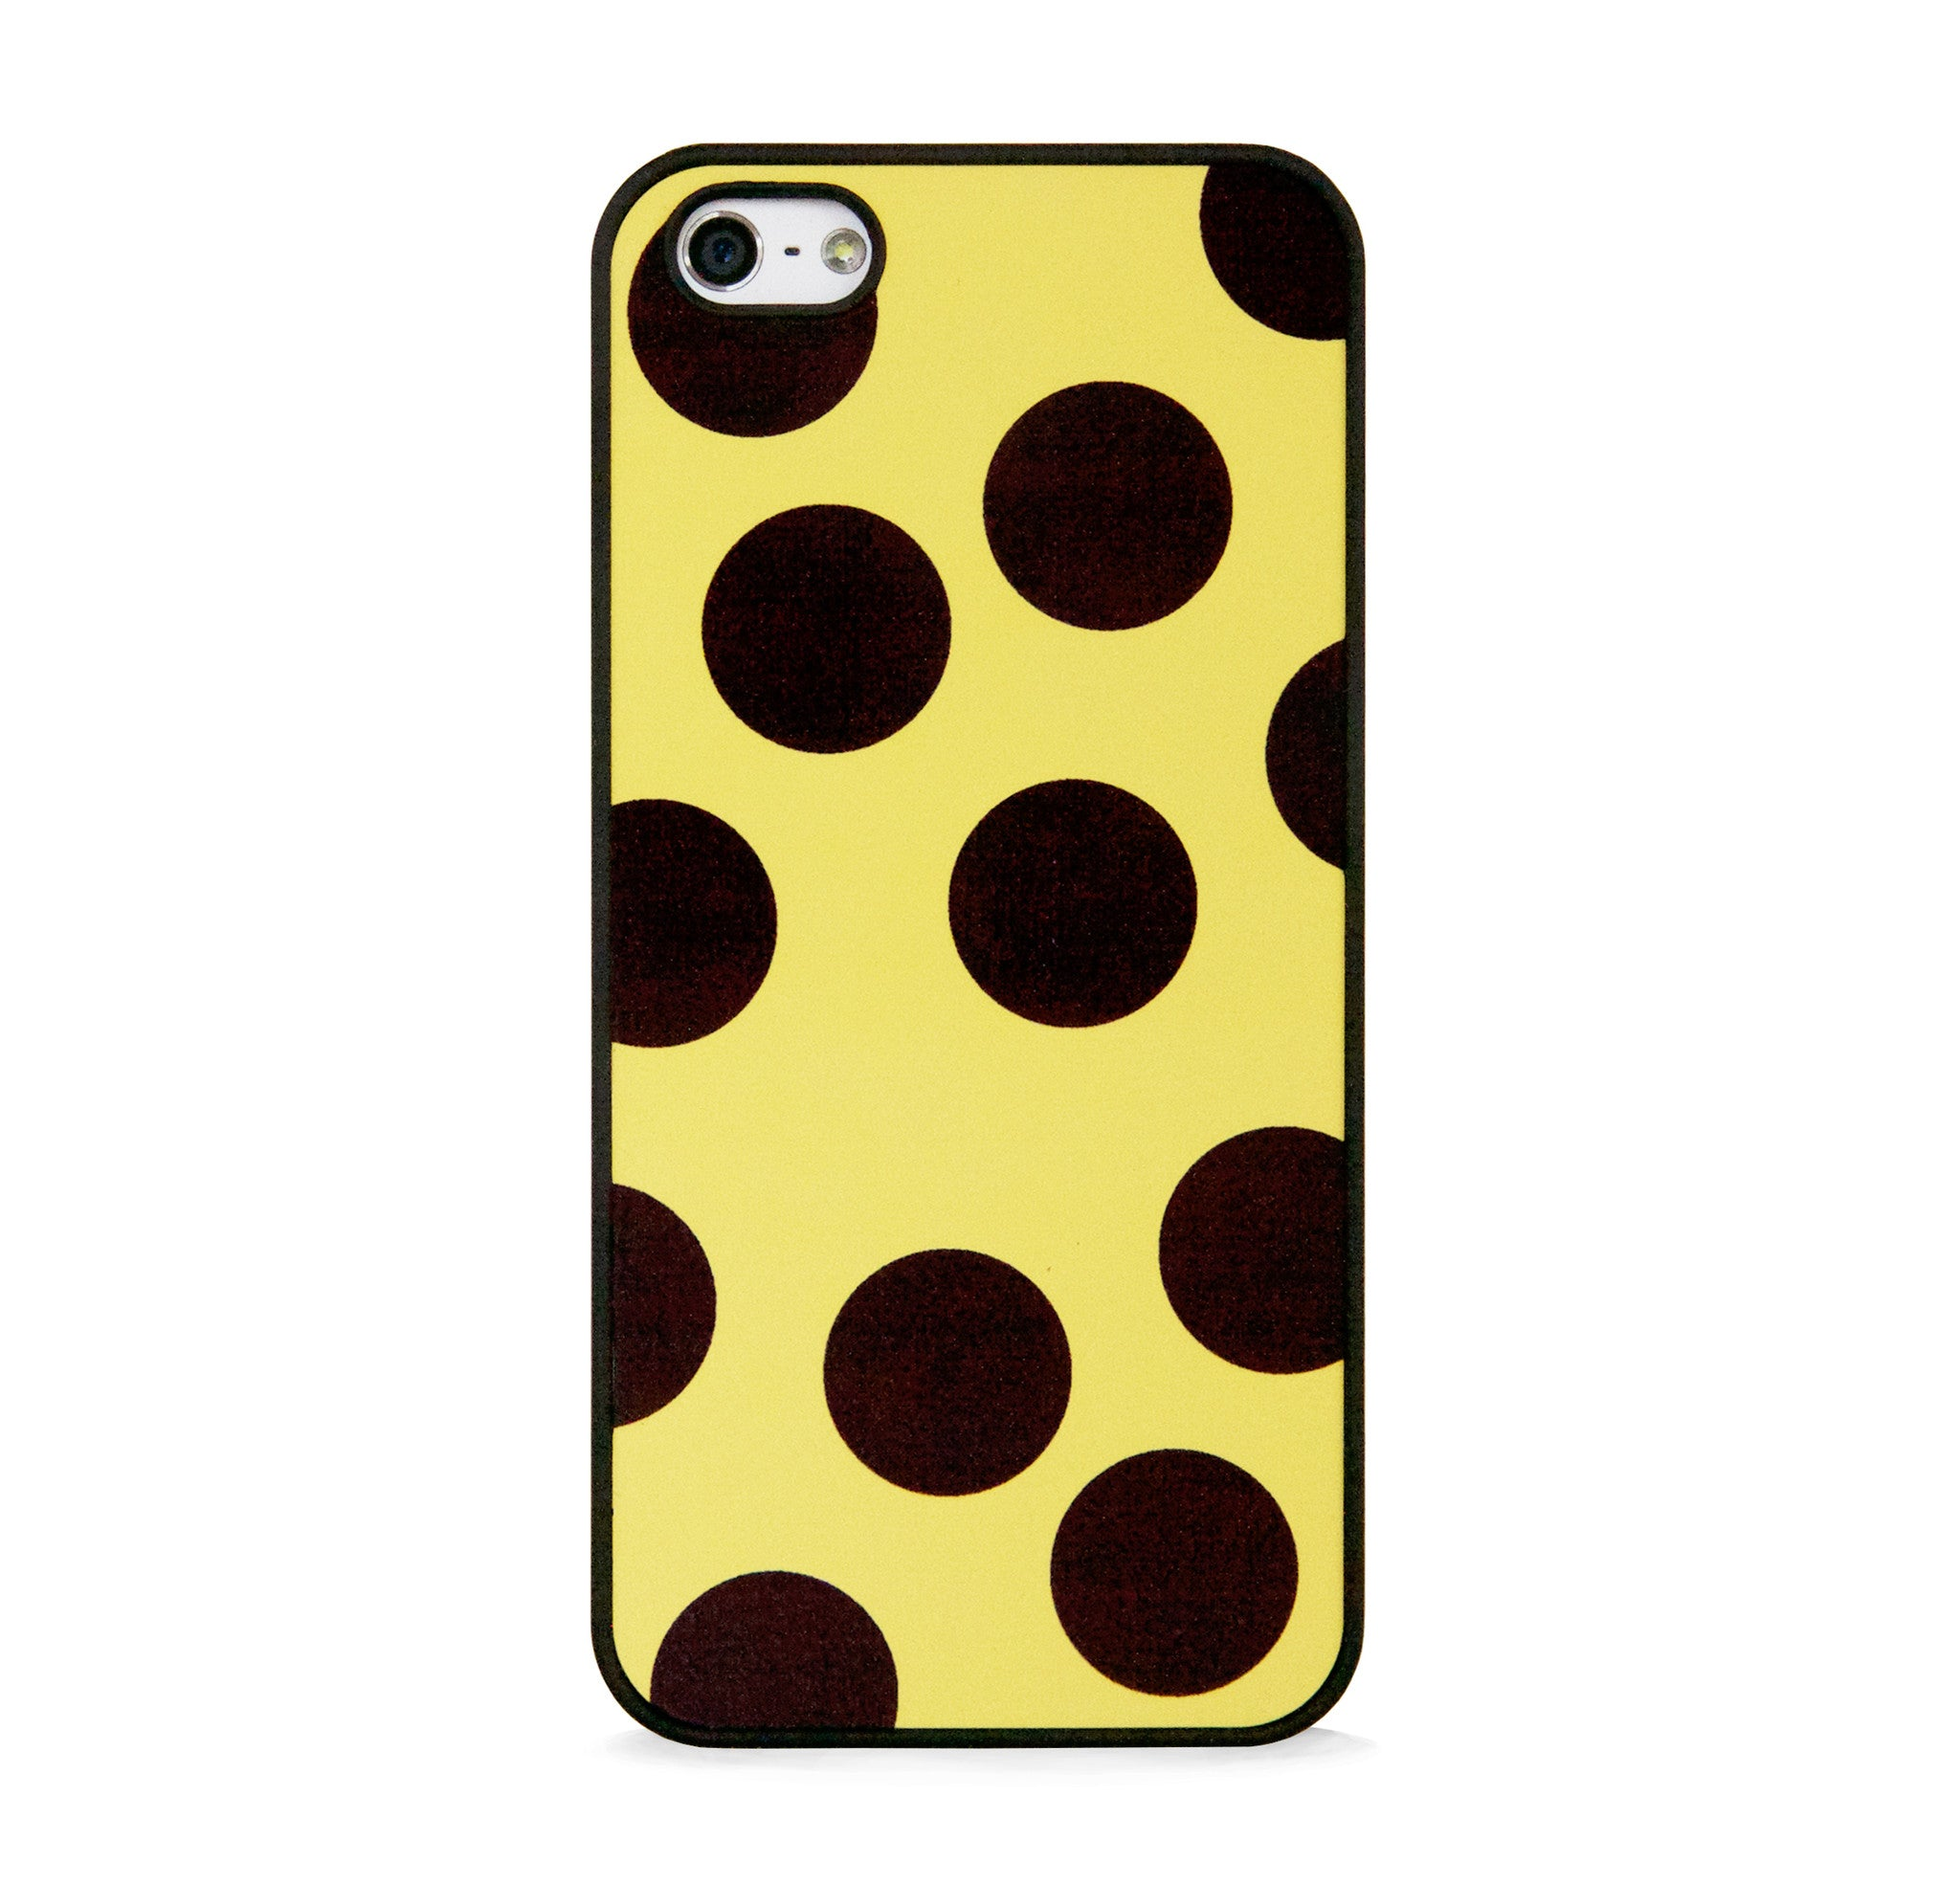 BIG POLKA DOTS ON YELLOW FOR IPHONE 5/5S